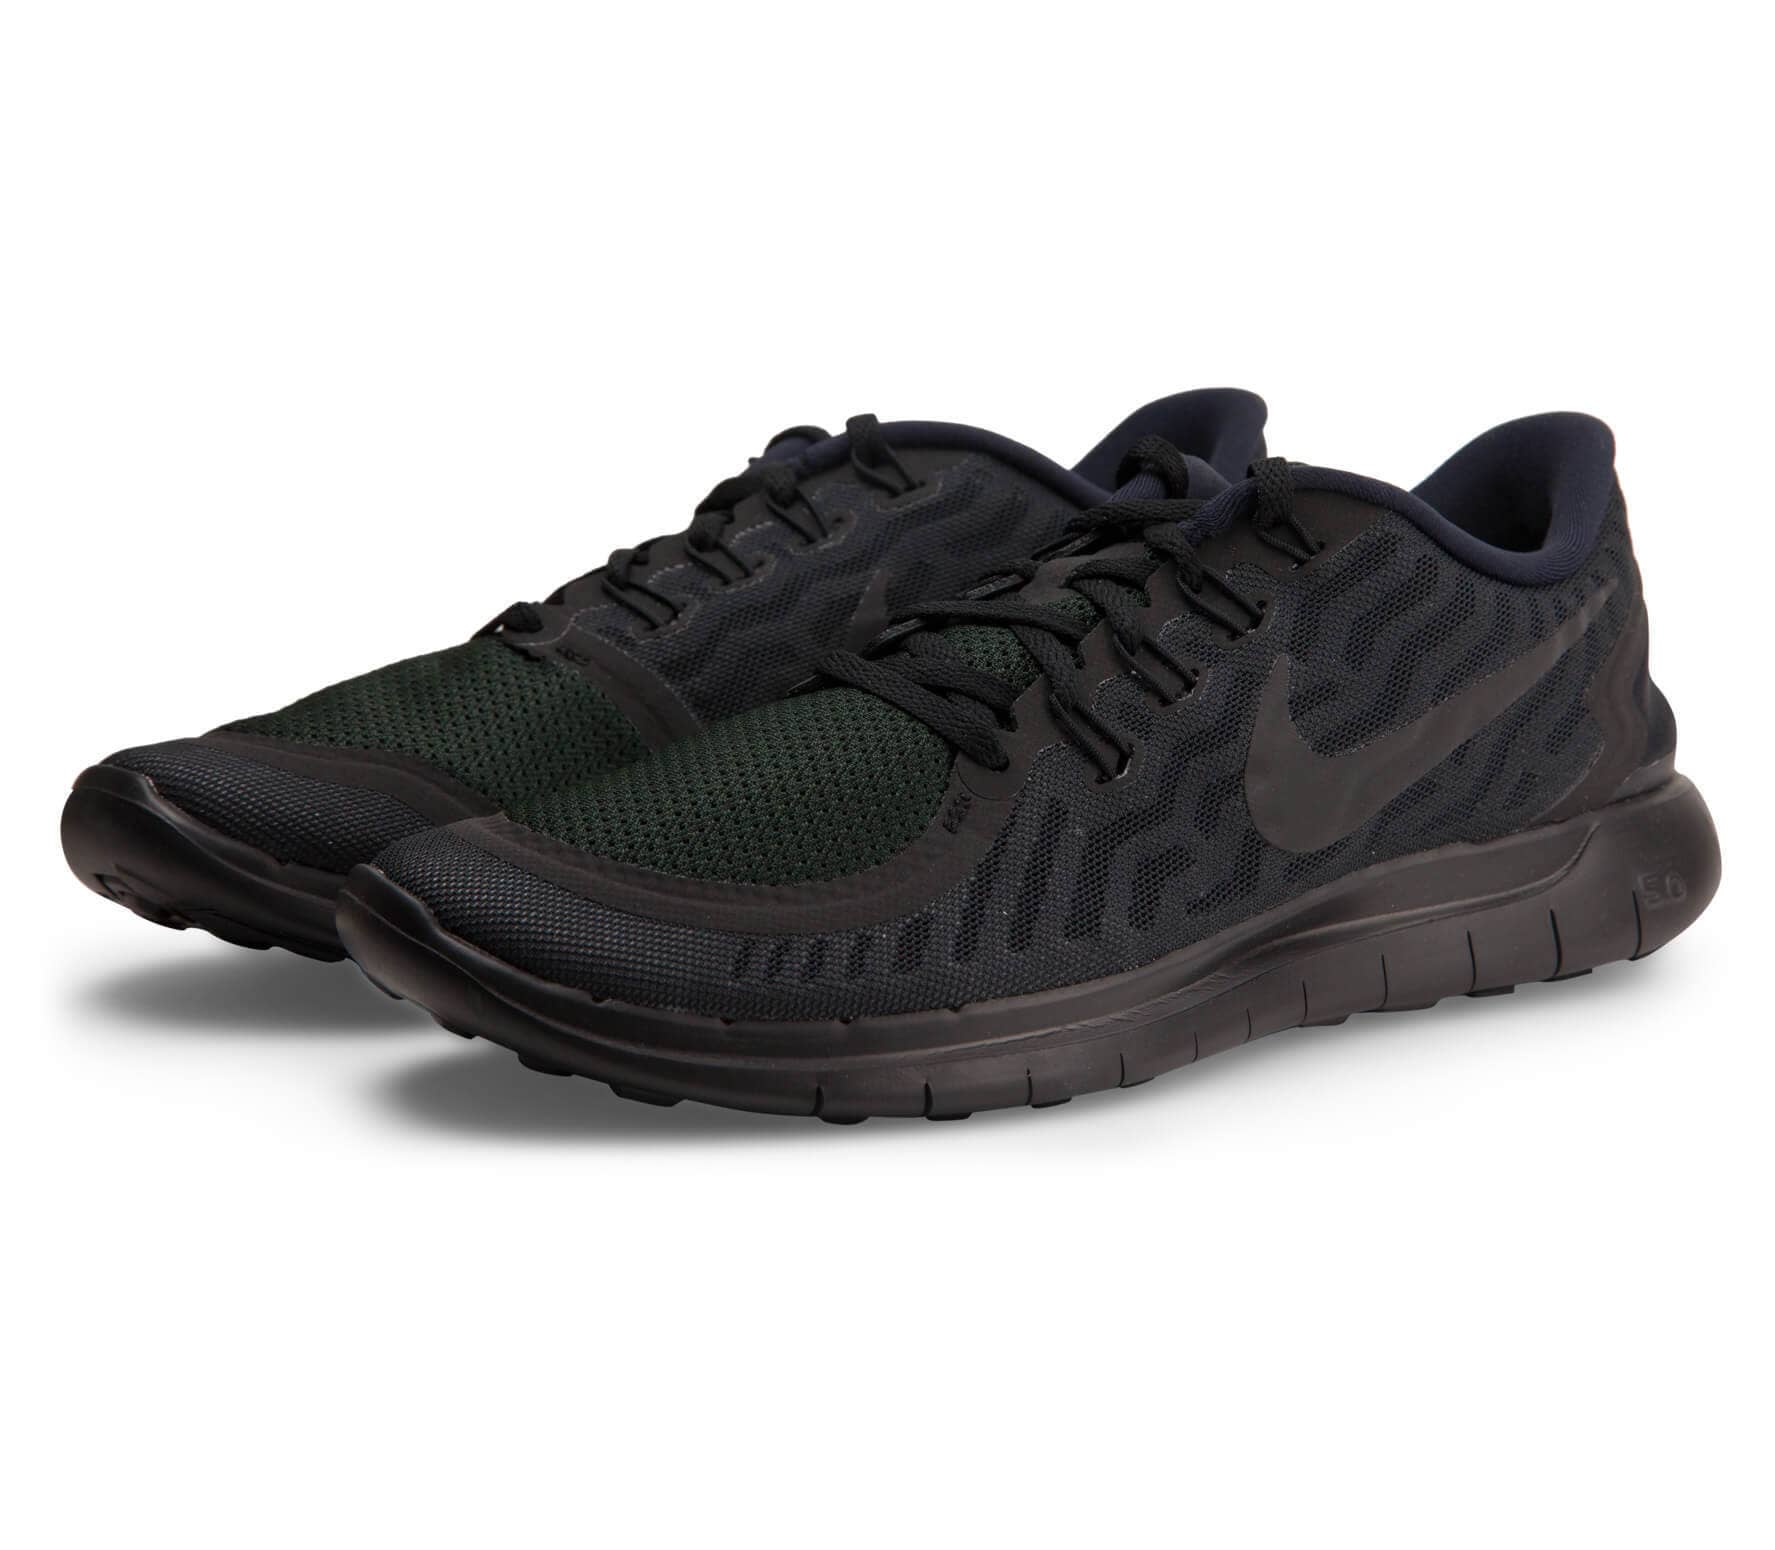 uk availability 5df79 cd0ec Nike - Free 5.0 men's running shoes (black/white)